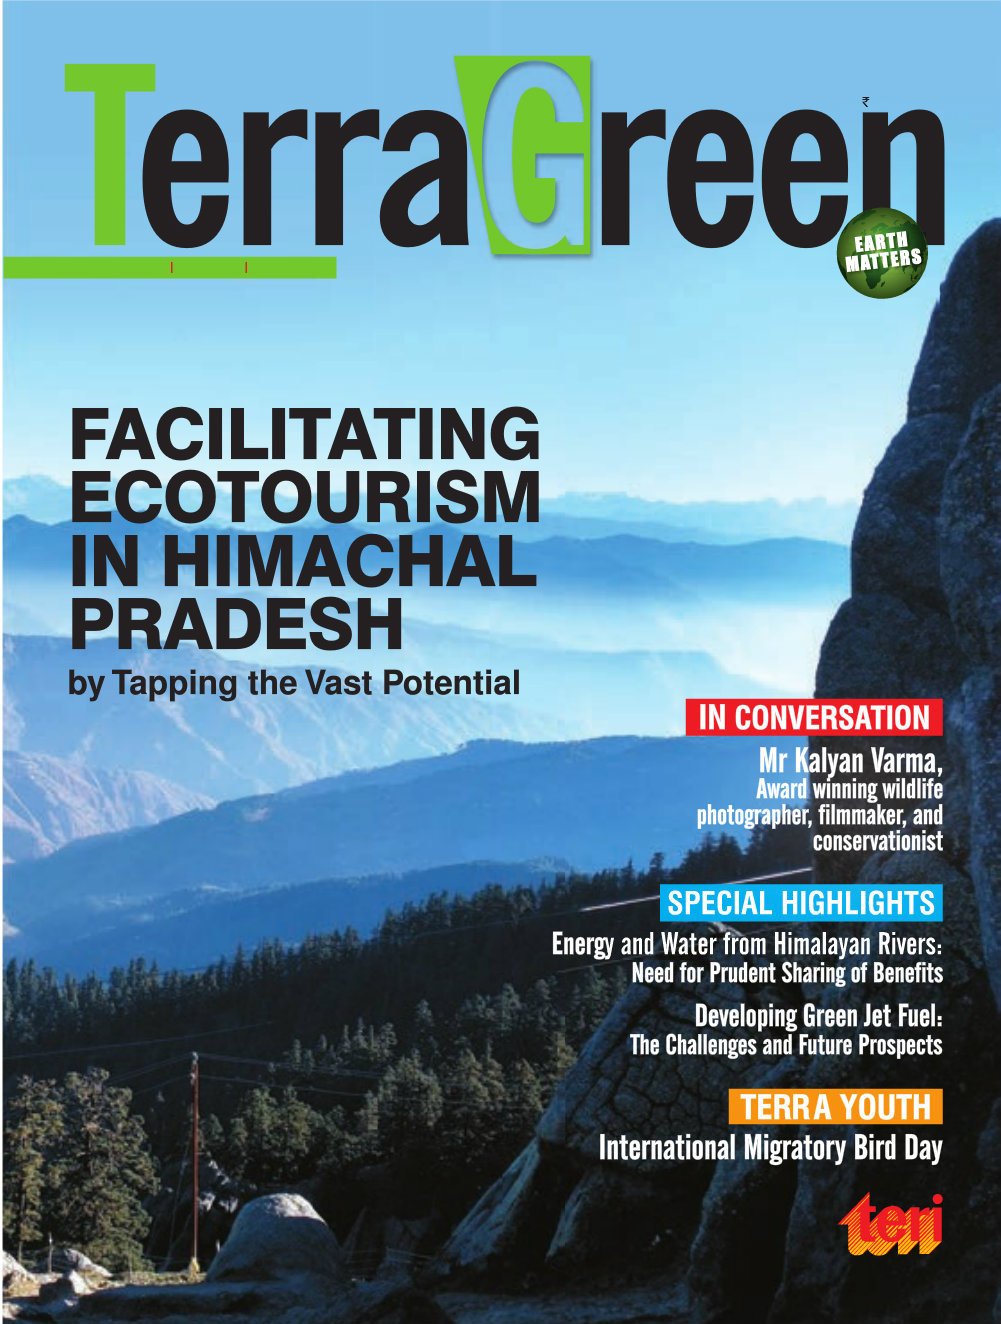 Facilitating Ecotourism in Himachal Pradesh by Tapping the